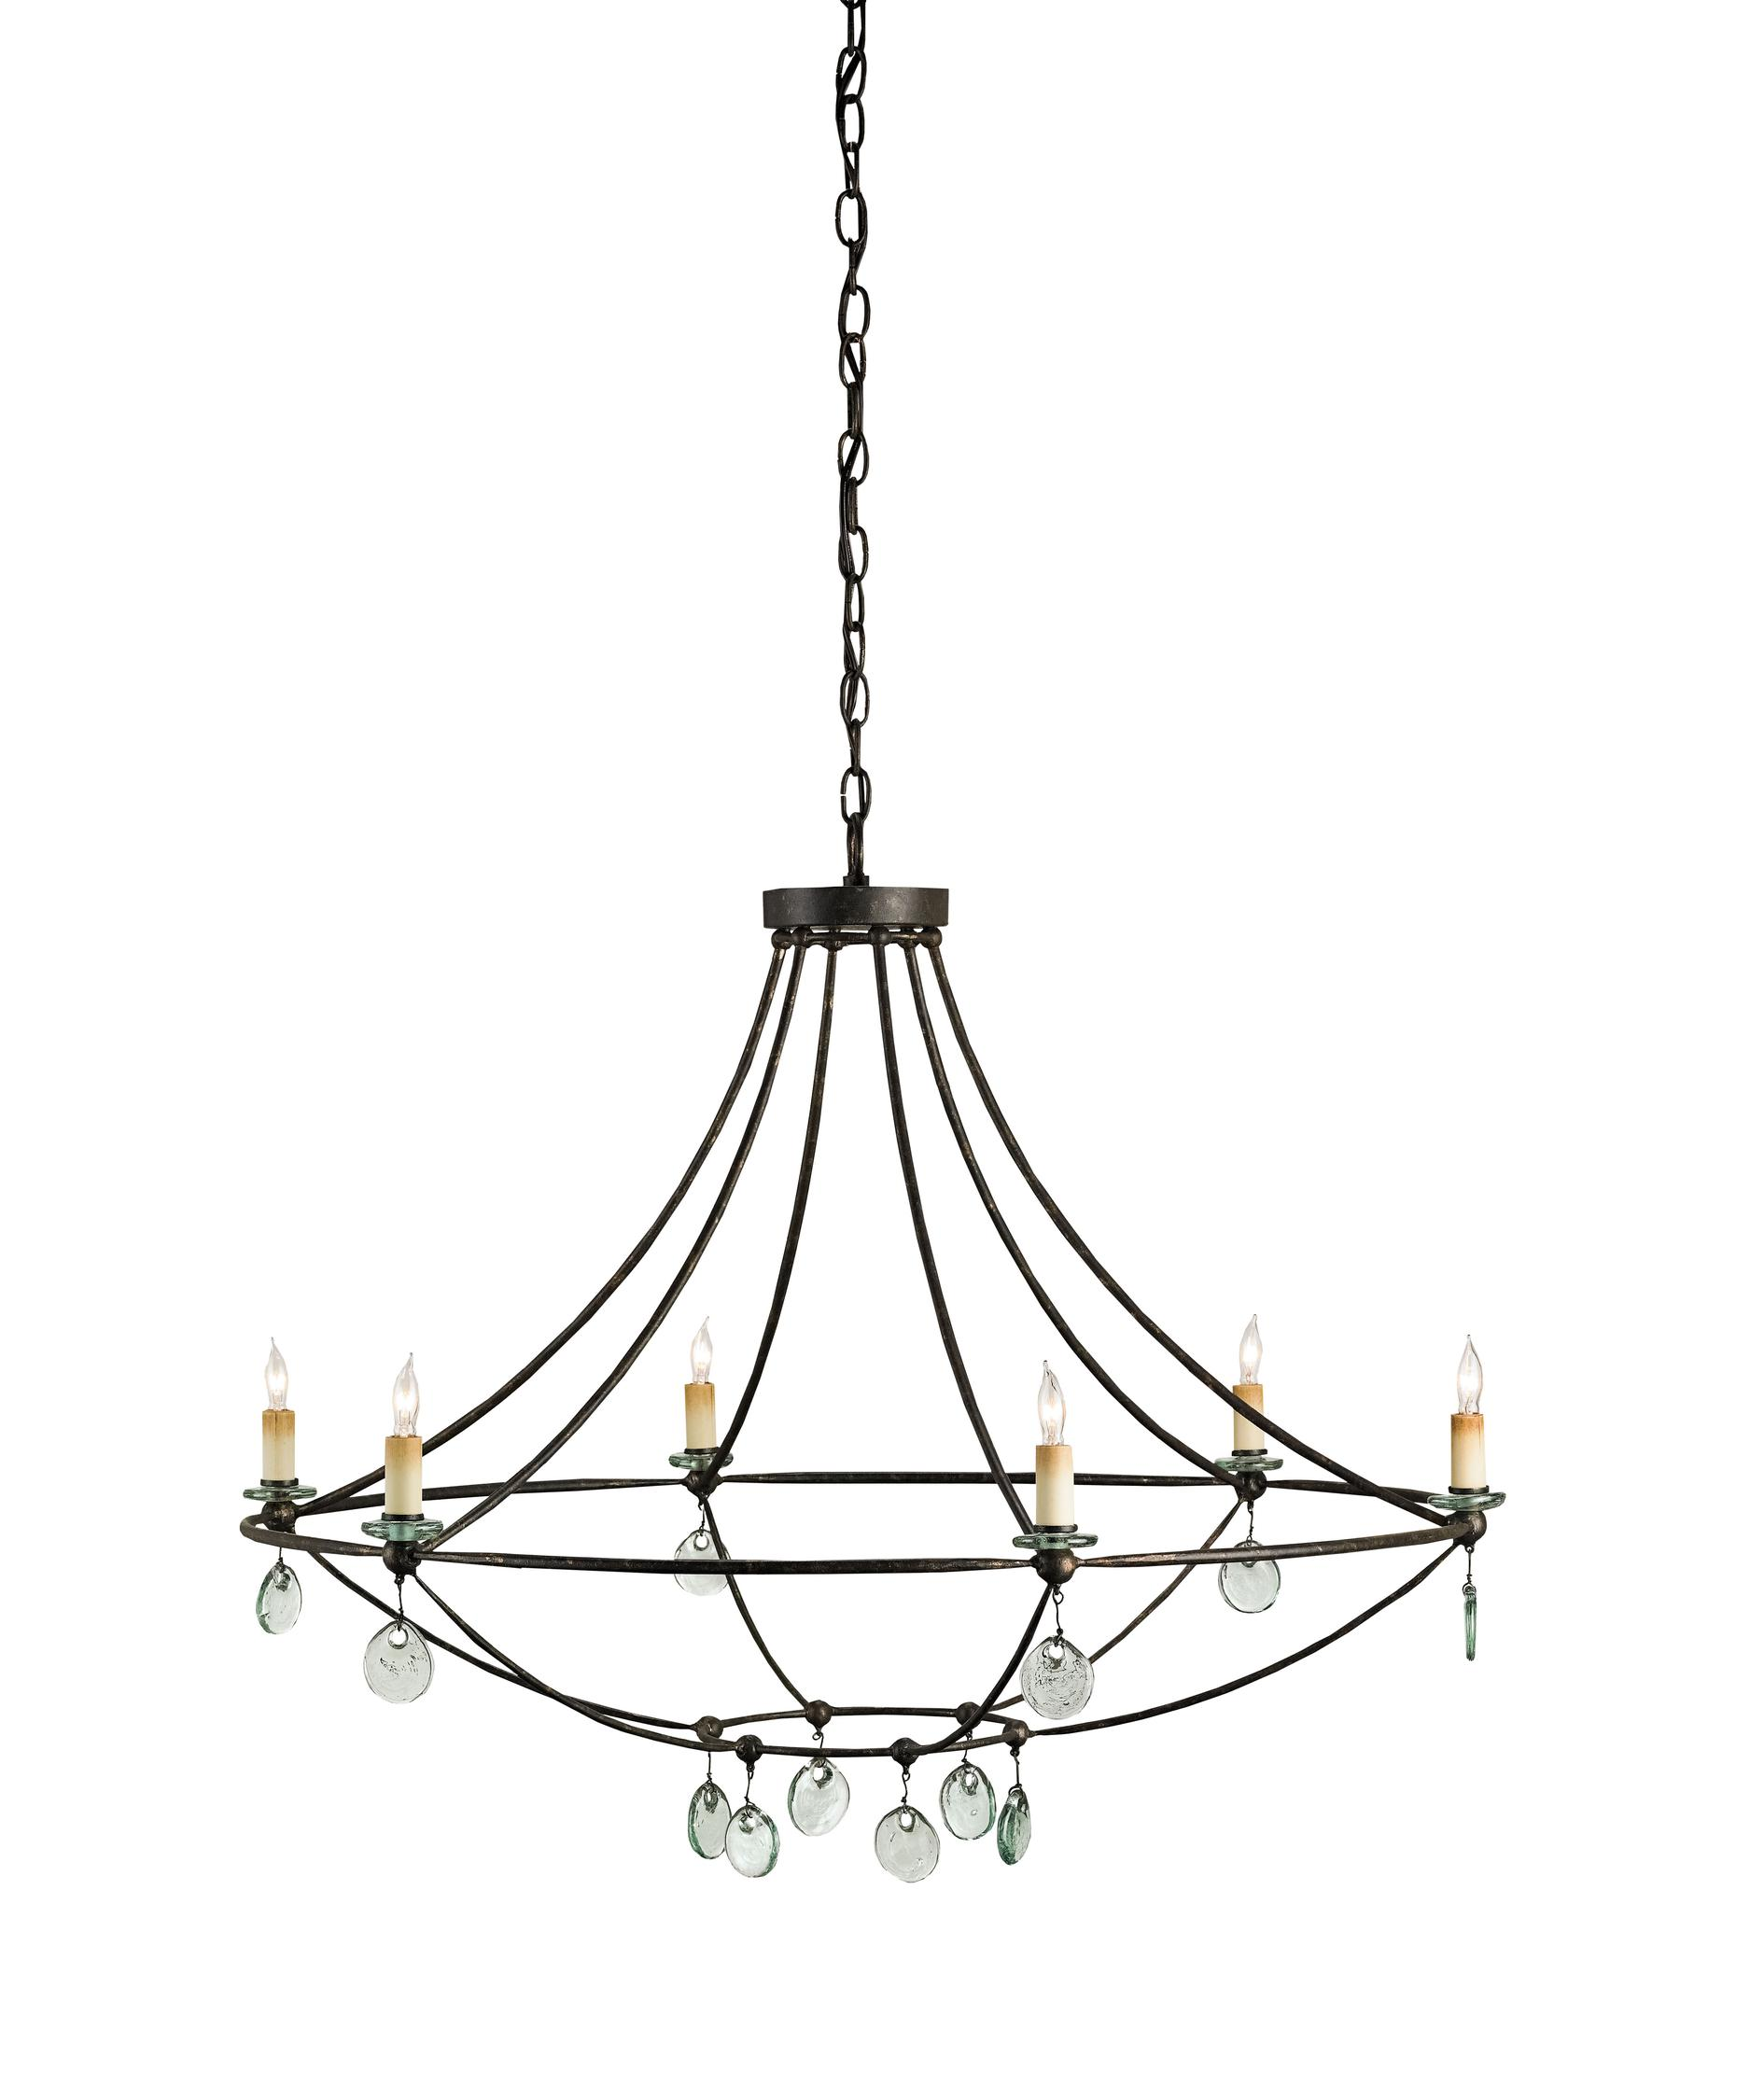 1875x2250 Currey And Company 9921 Novella 6 Light Chandelier Capitol